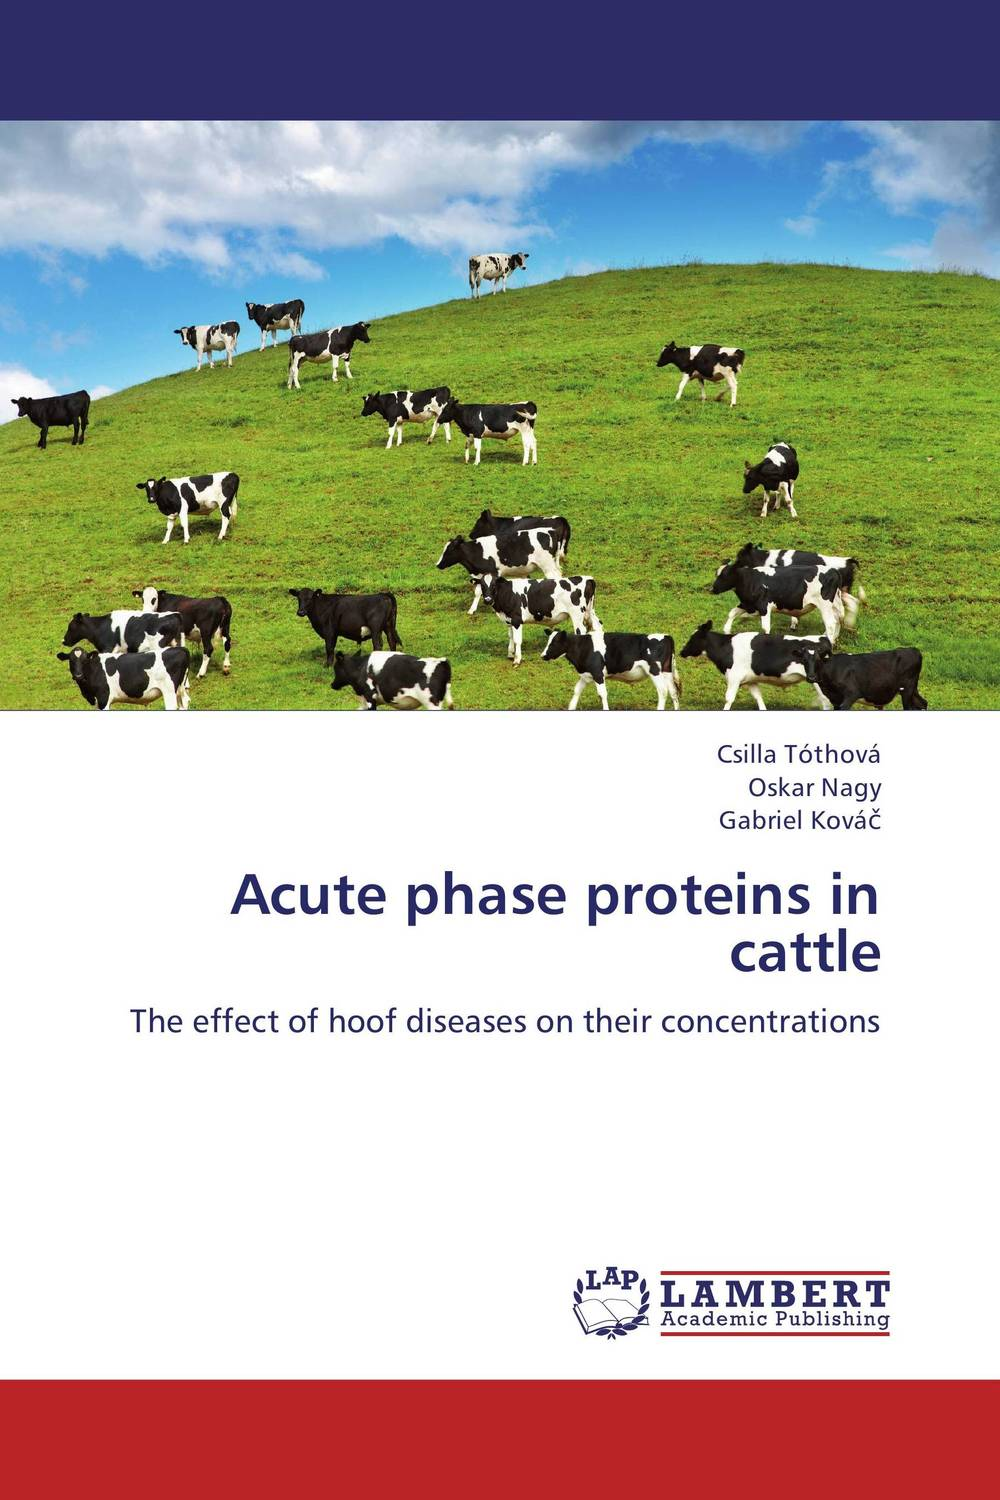 Acute phase proteins in cattle